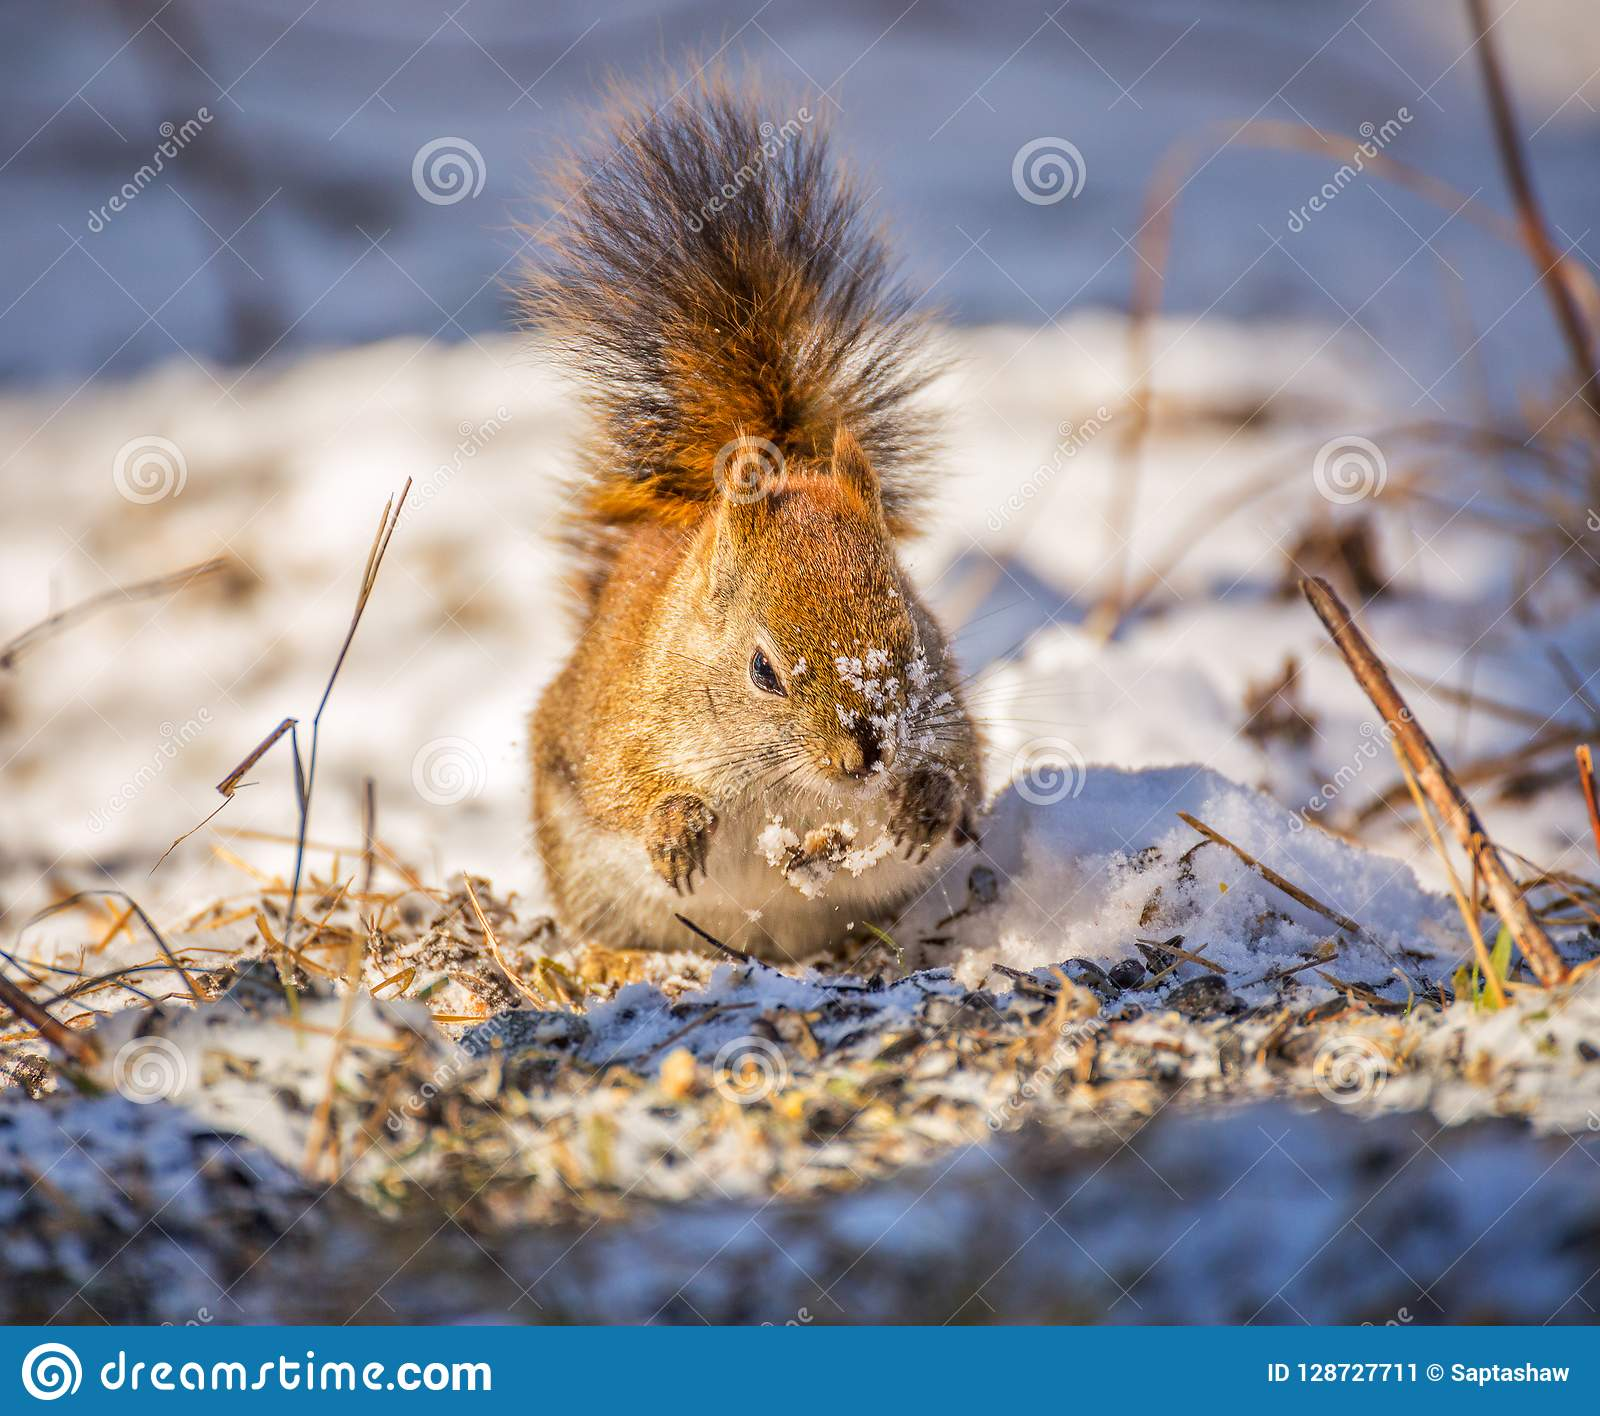 Red squirrel in snow drops food